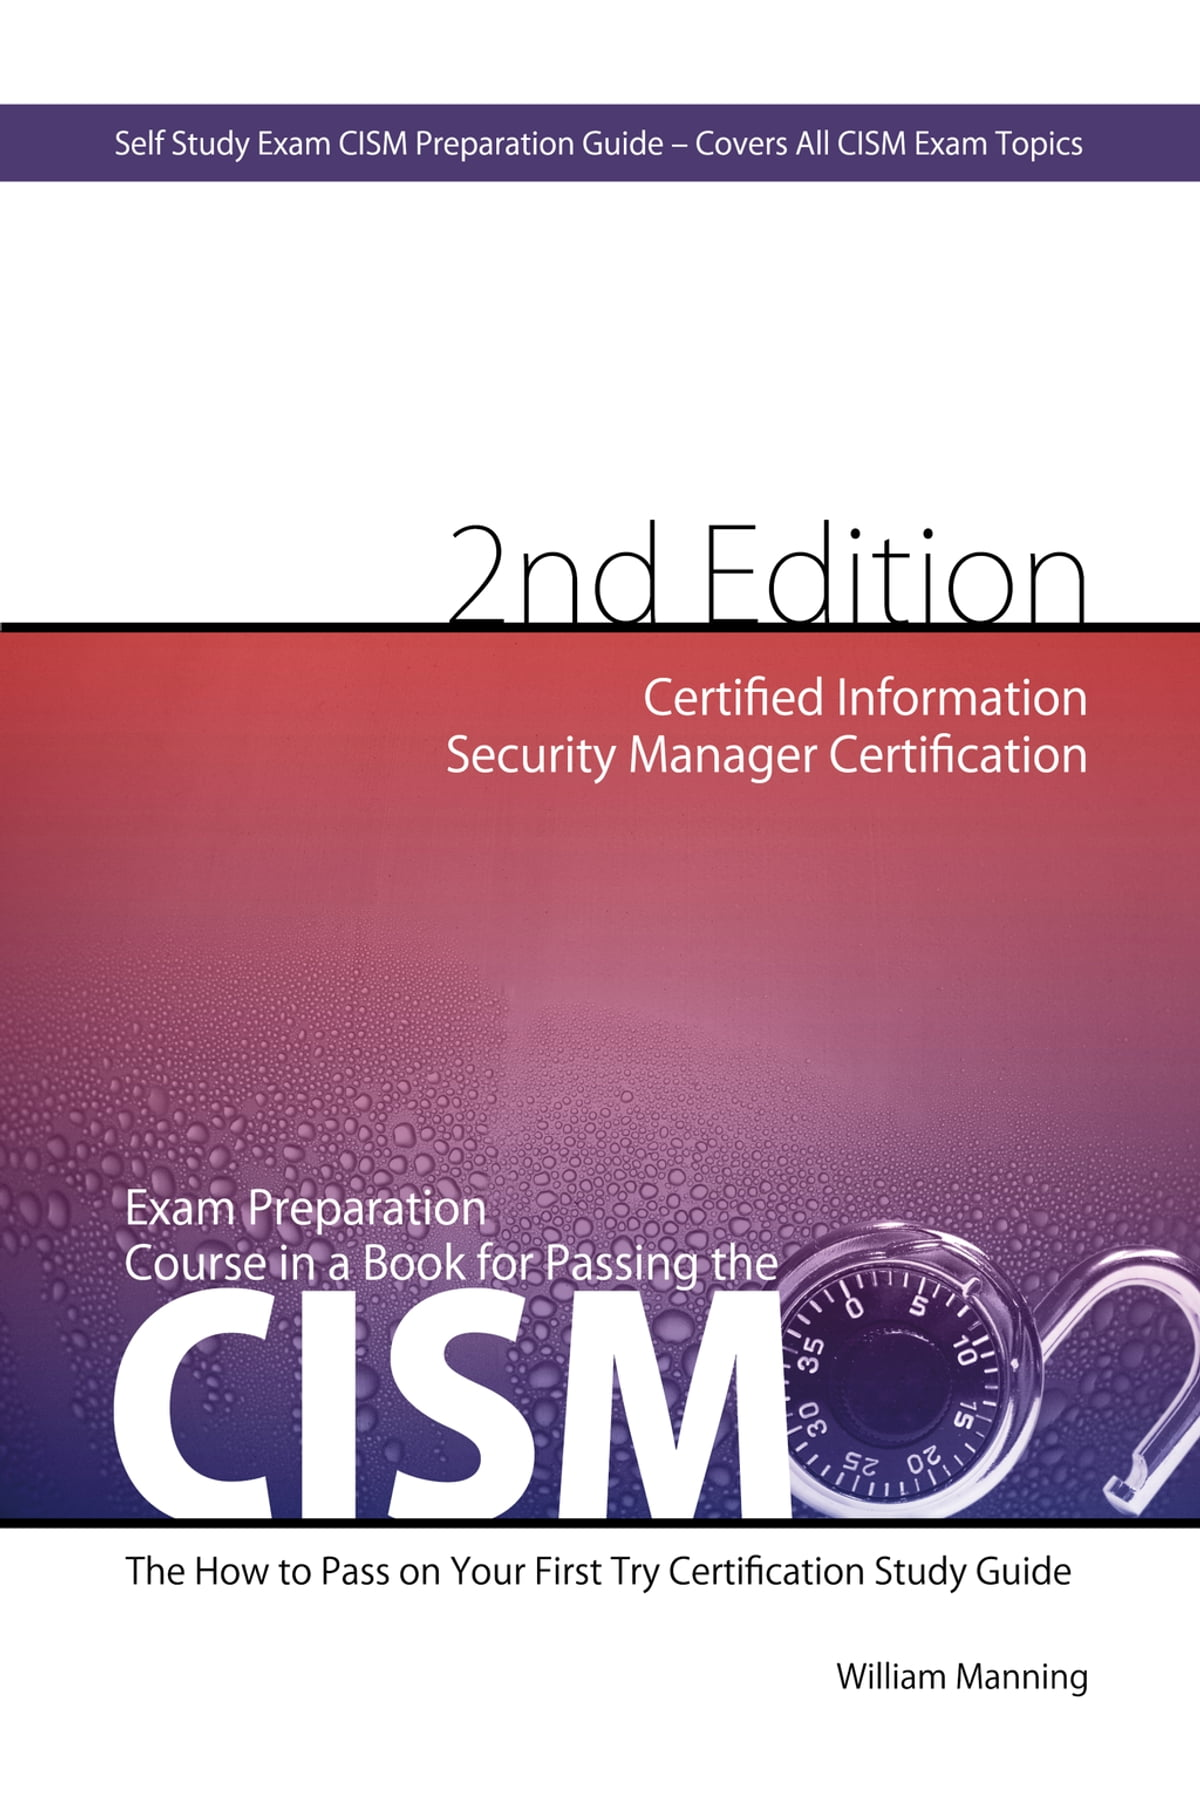 Cissp study guide ebook by eric conrad 9781597495646 rakuten kobo cism certified information security manager certification exam preparation course in a book for passing the cism xflitez Images